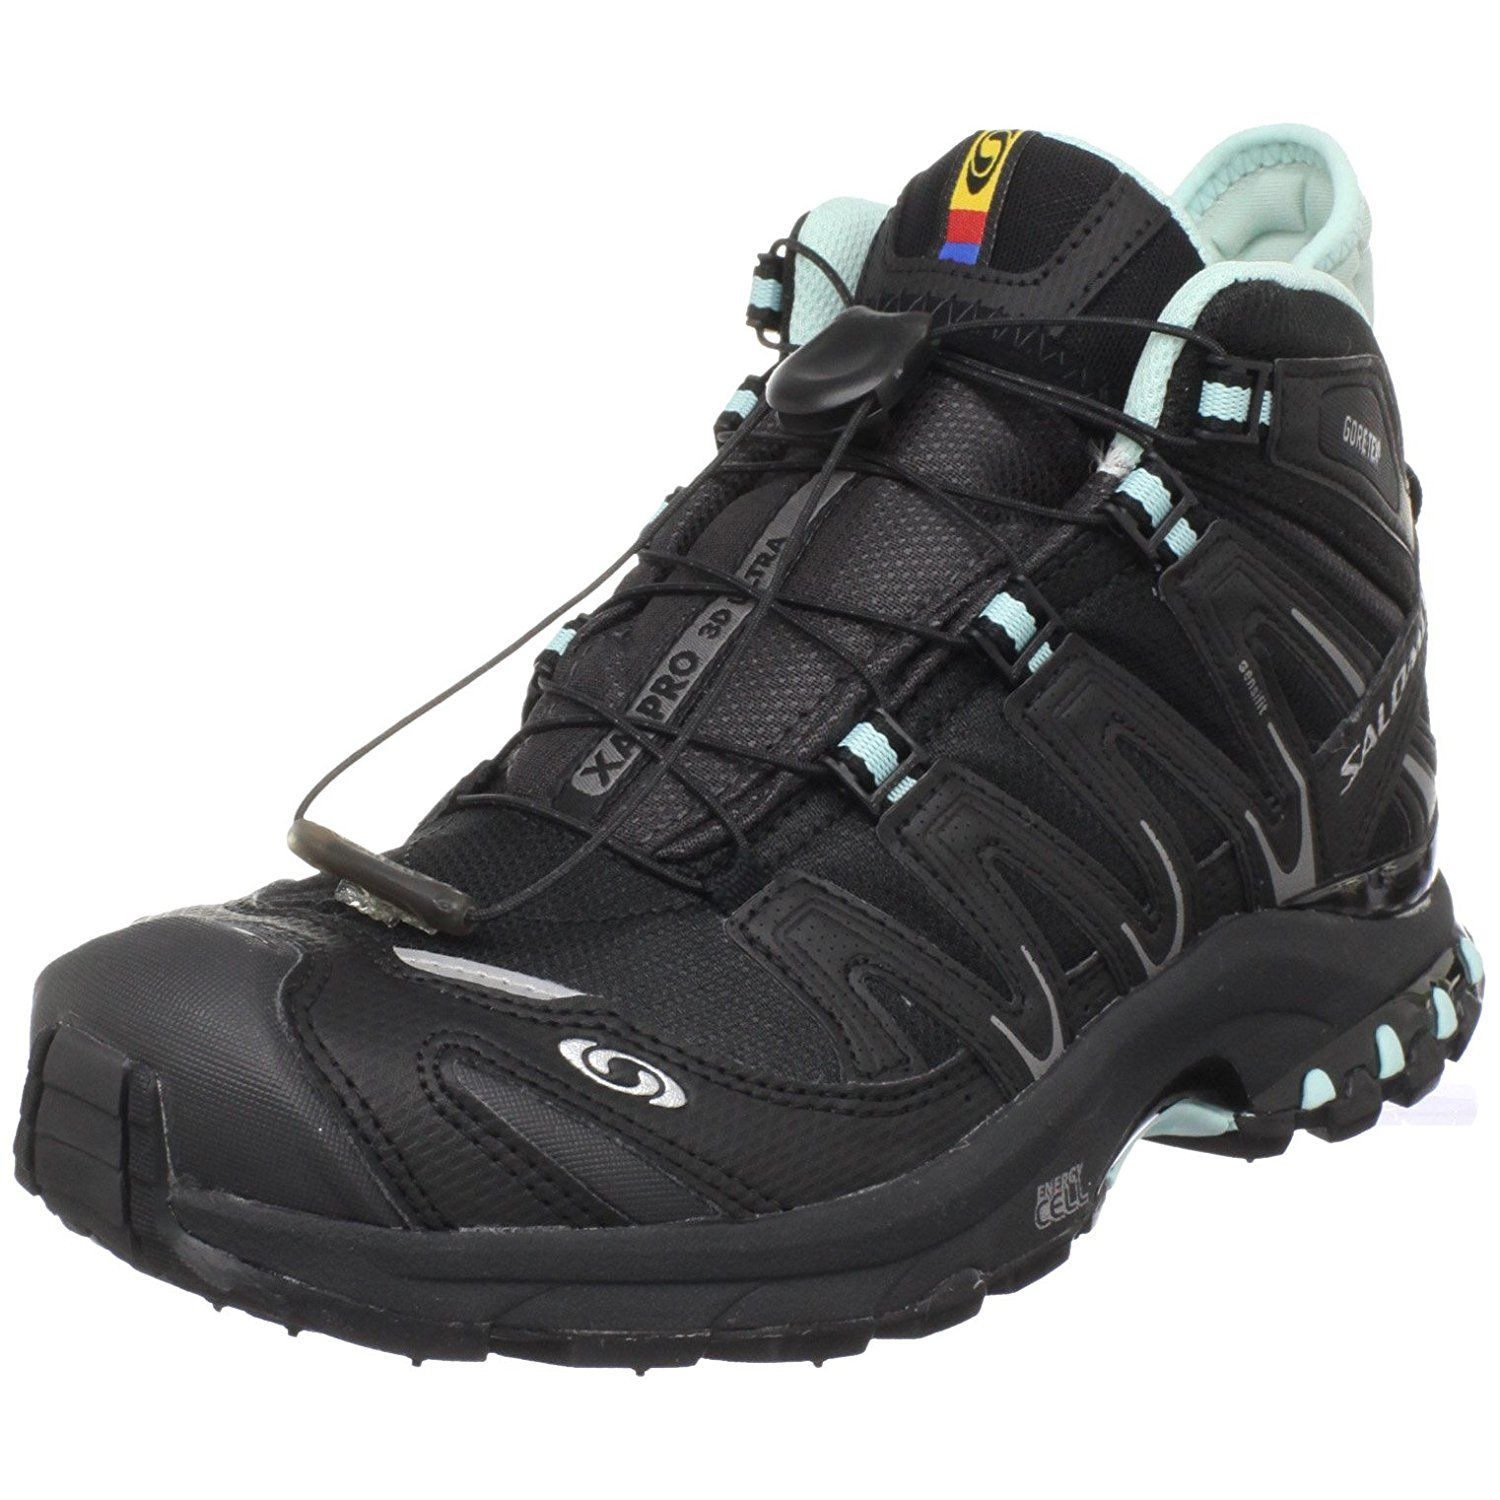 Althletic Hiking Boot Salomon XA Pro 3D Mid GTX Ultra from